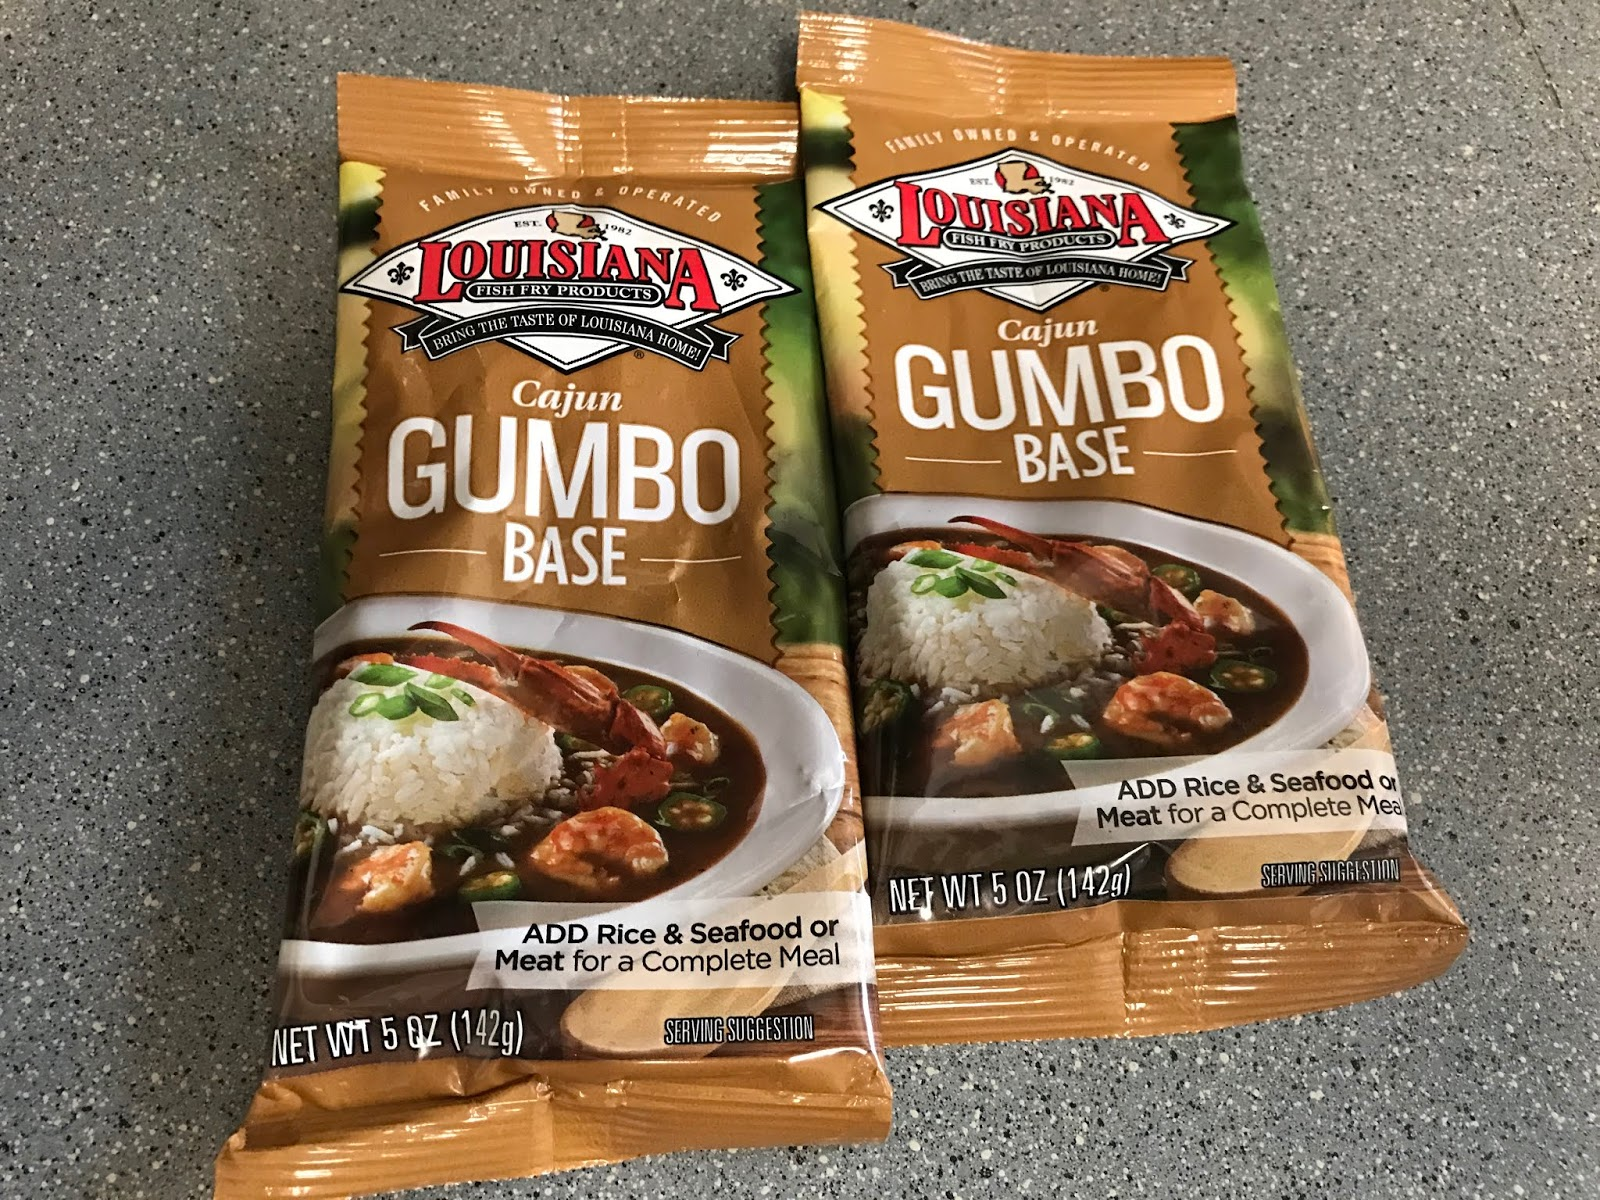 Image:The base used to make homemade Gumbo